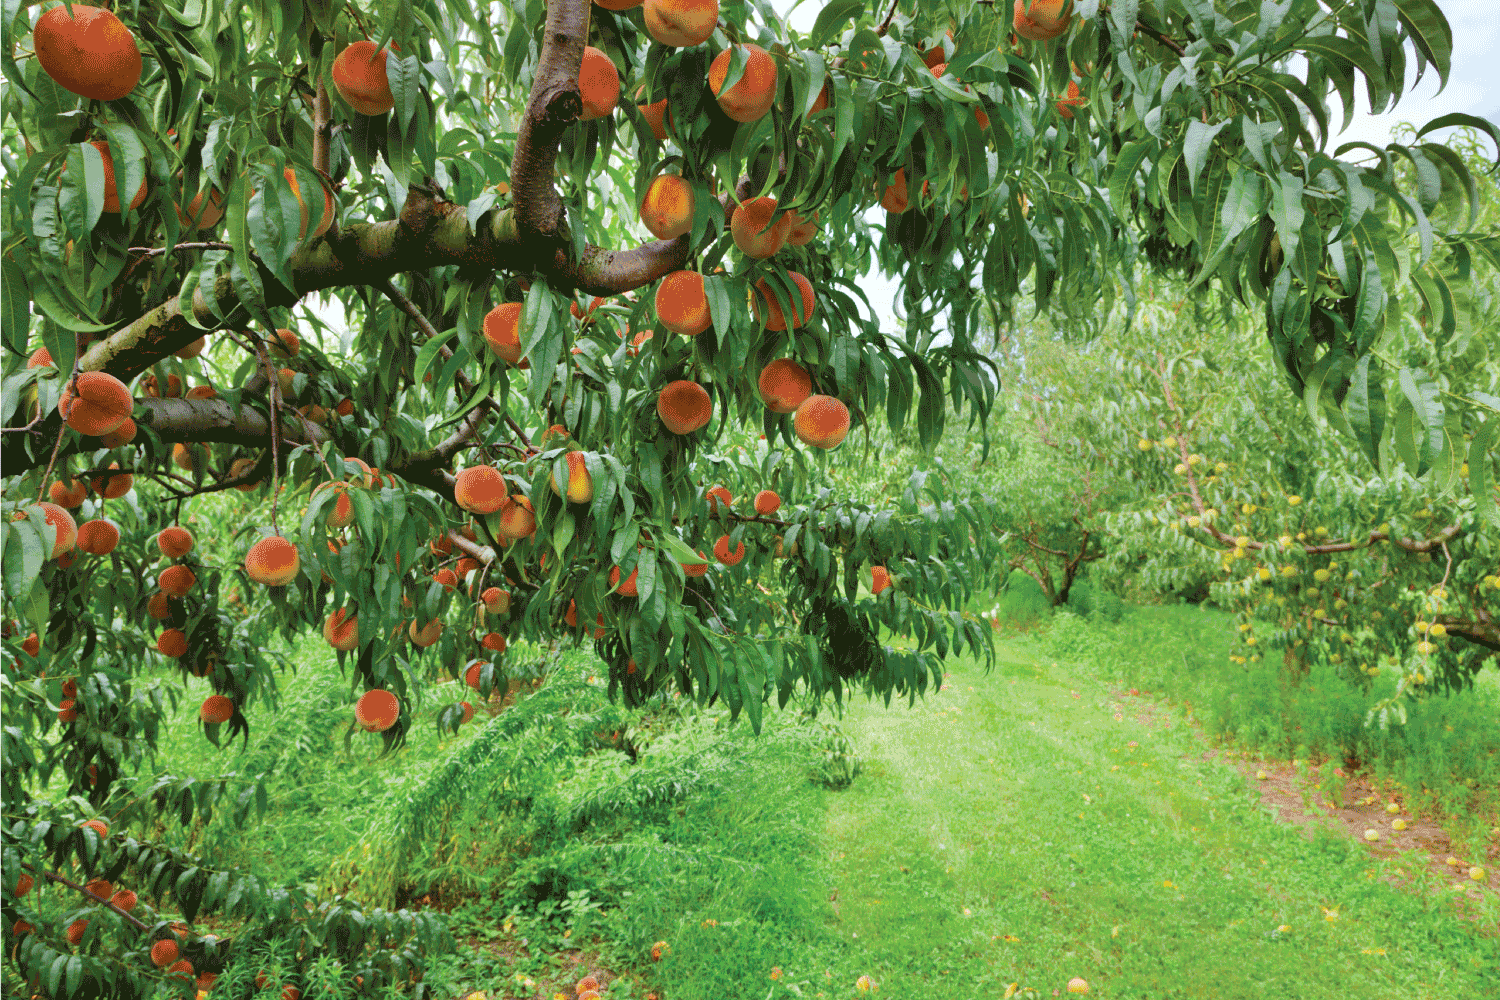 peach tree brunch with ripe fruit at an orchard